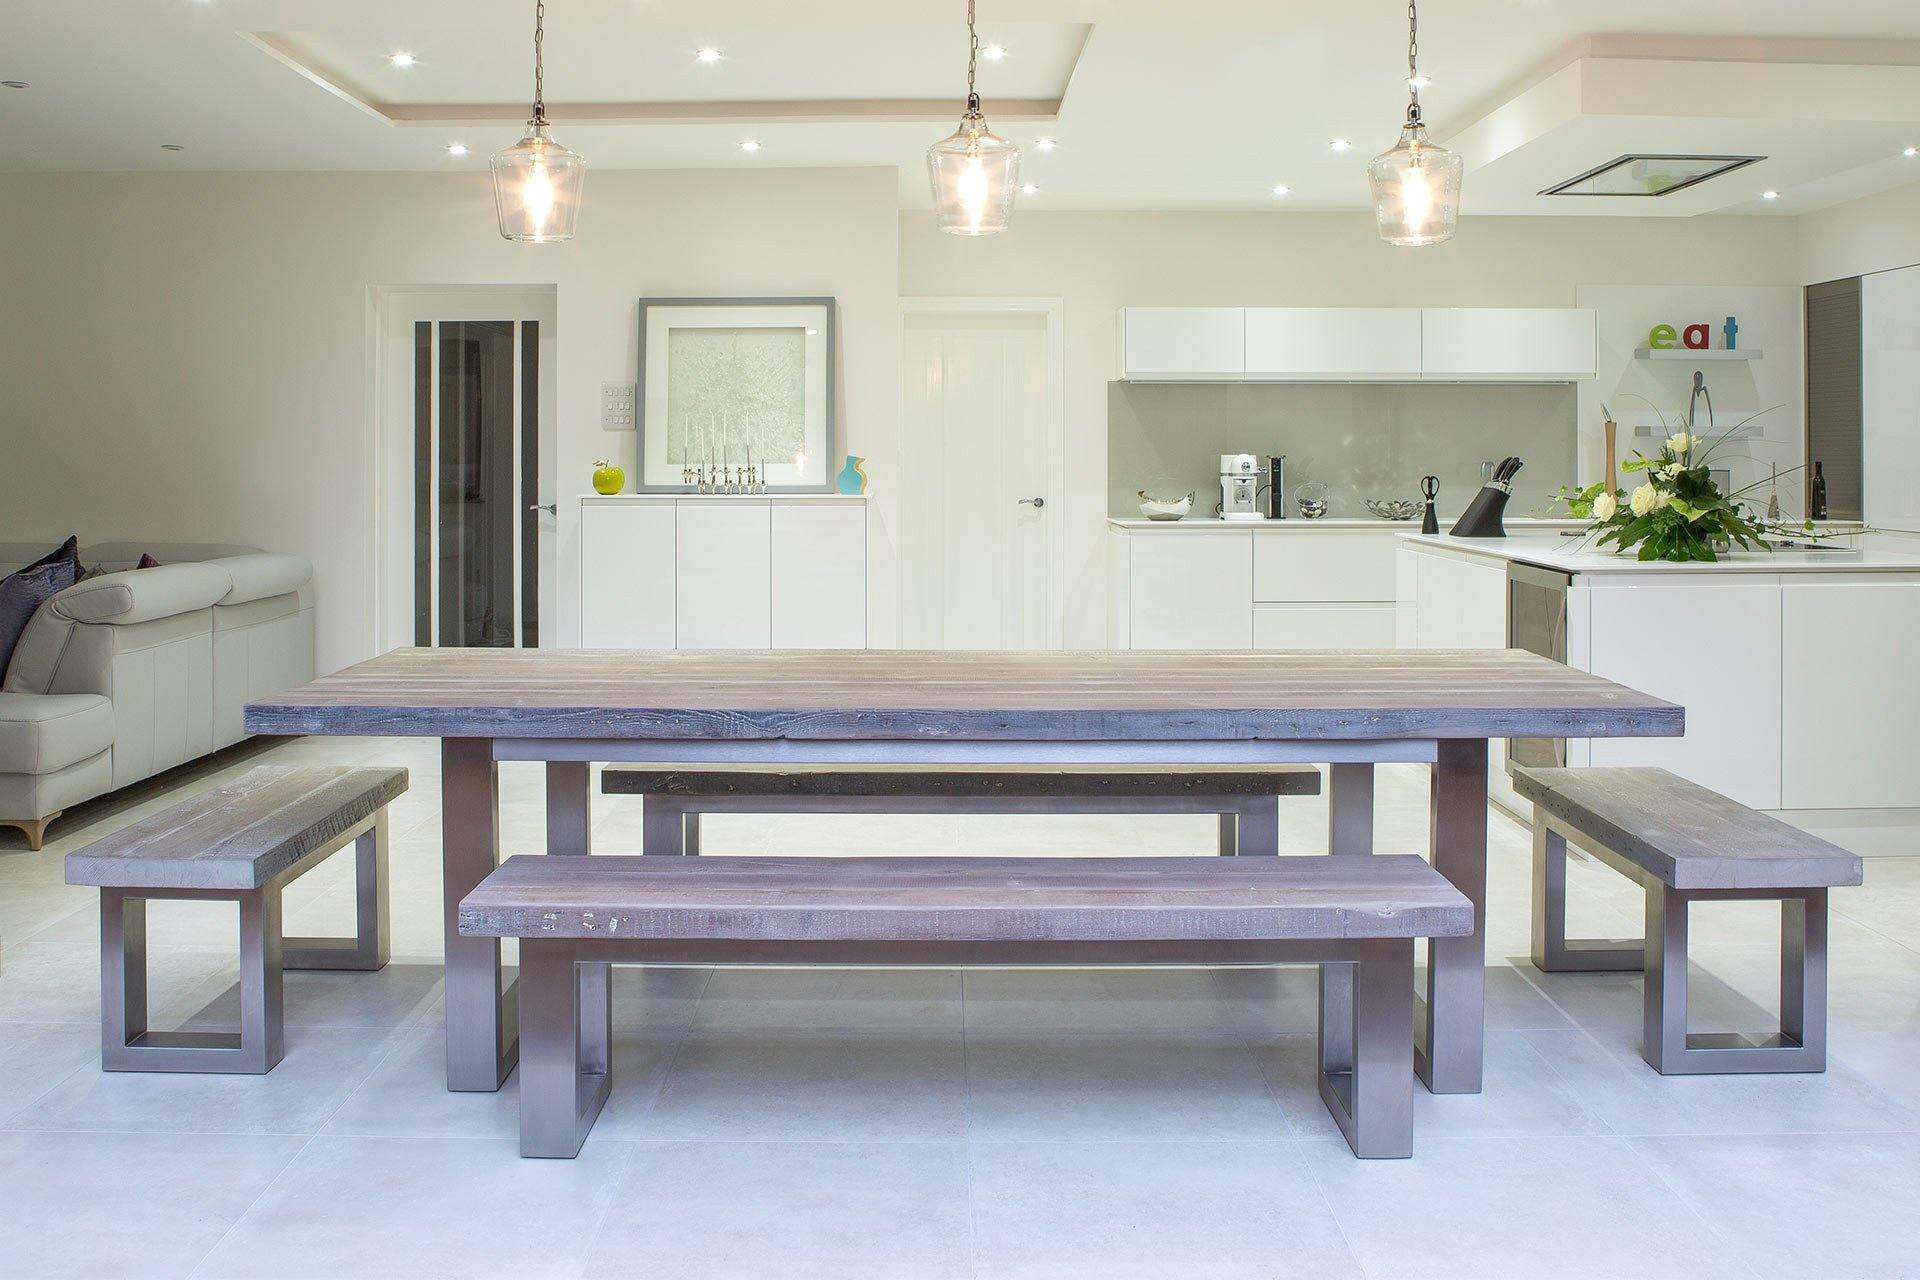 Grey 284cm Long Overhang Table With 178cm Side & 100cm End Benches (Sold Separately)